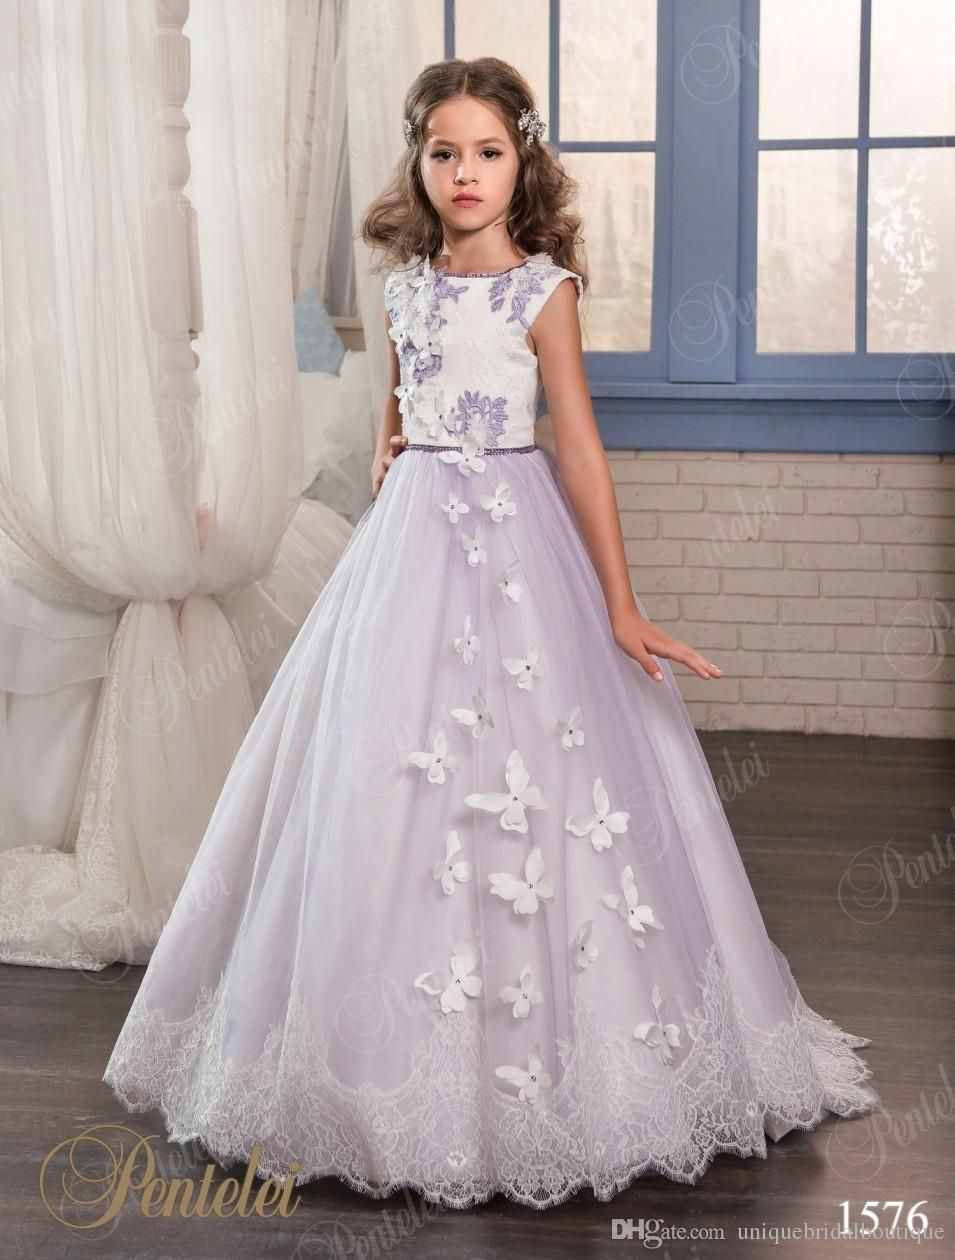 Lanvender Dresses For Girls 2017 With Butterfly And Big Bow ...